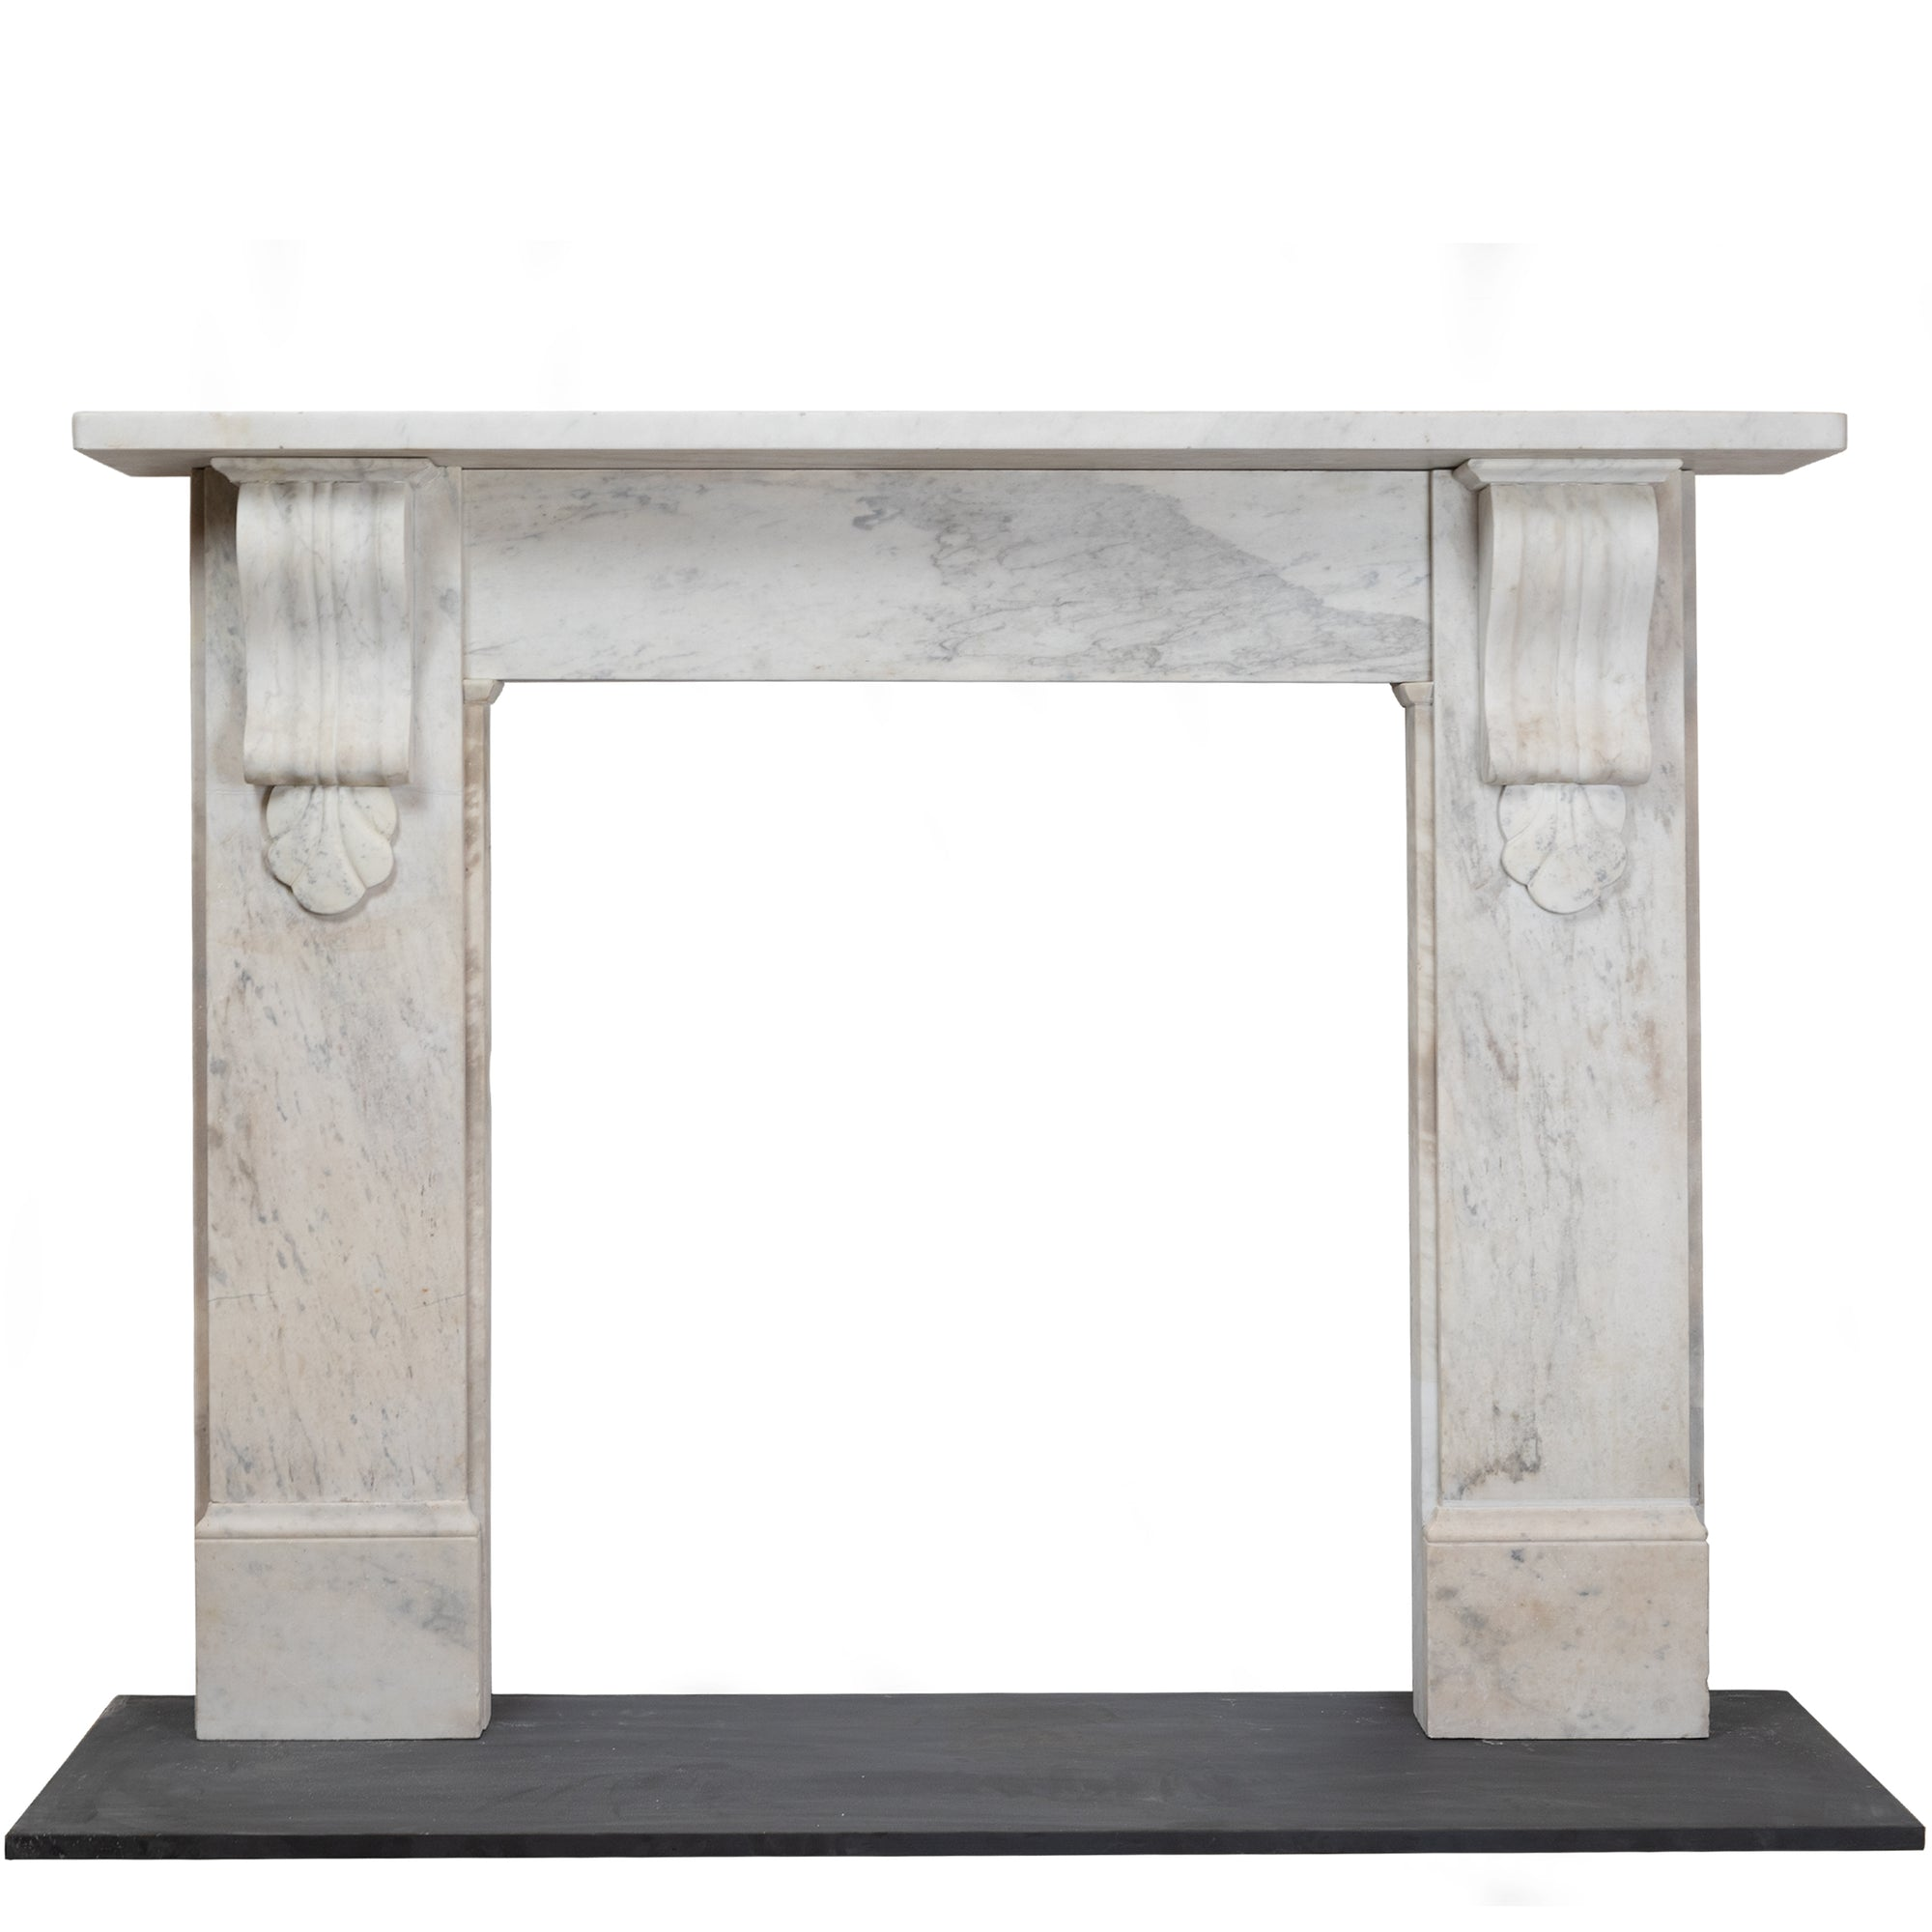 Antique Victorian Carrara Marble Corbel Fireplace Surround